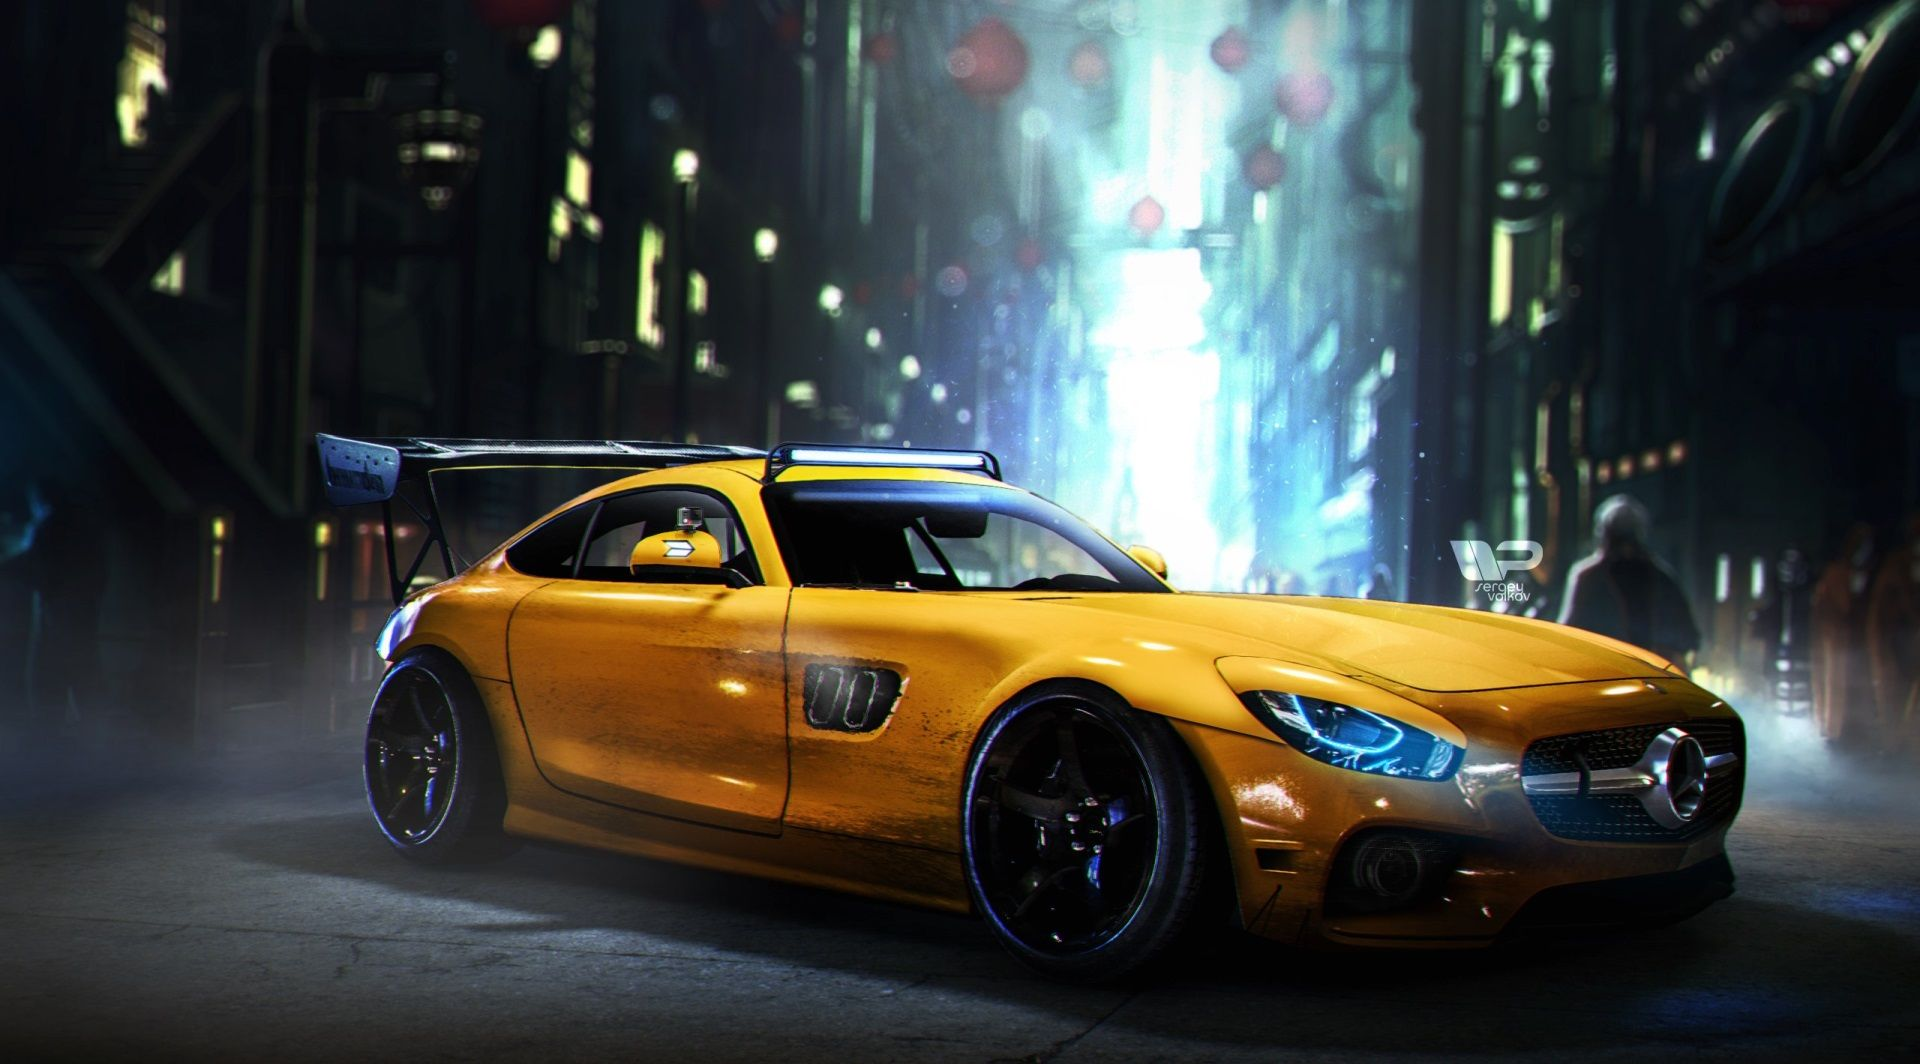 1920x1064 Mercedes Amg Gt S Pc Wallpaper Free Download Hd Mercedes Amg Gt S Mercedes Amg Amg